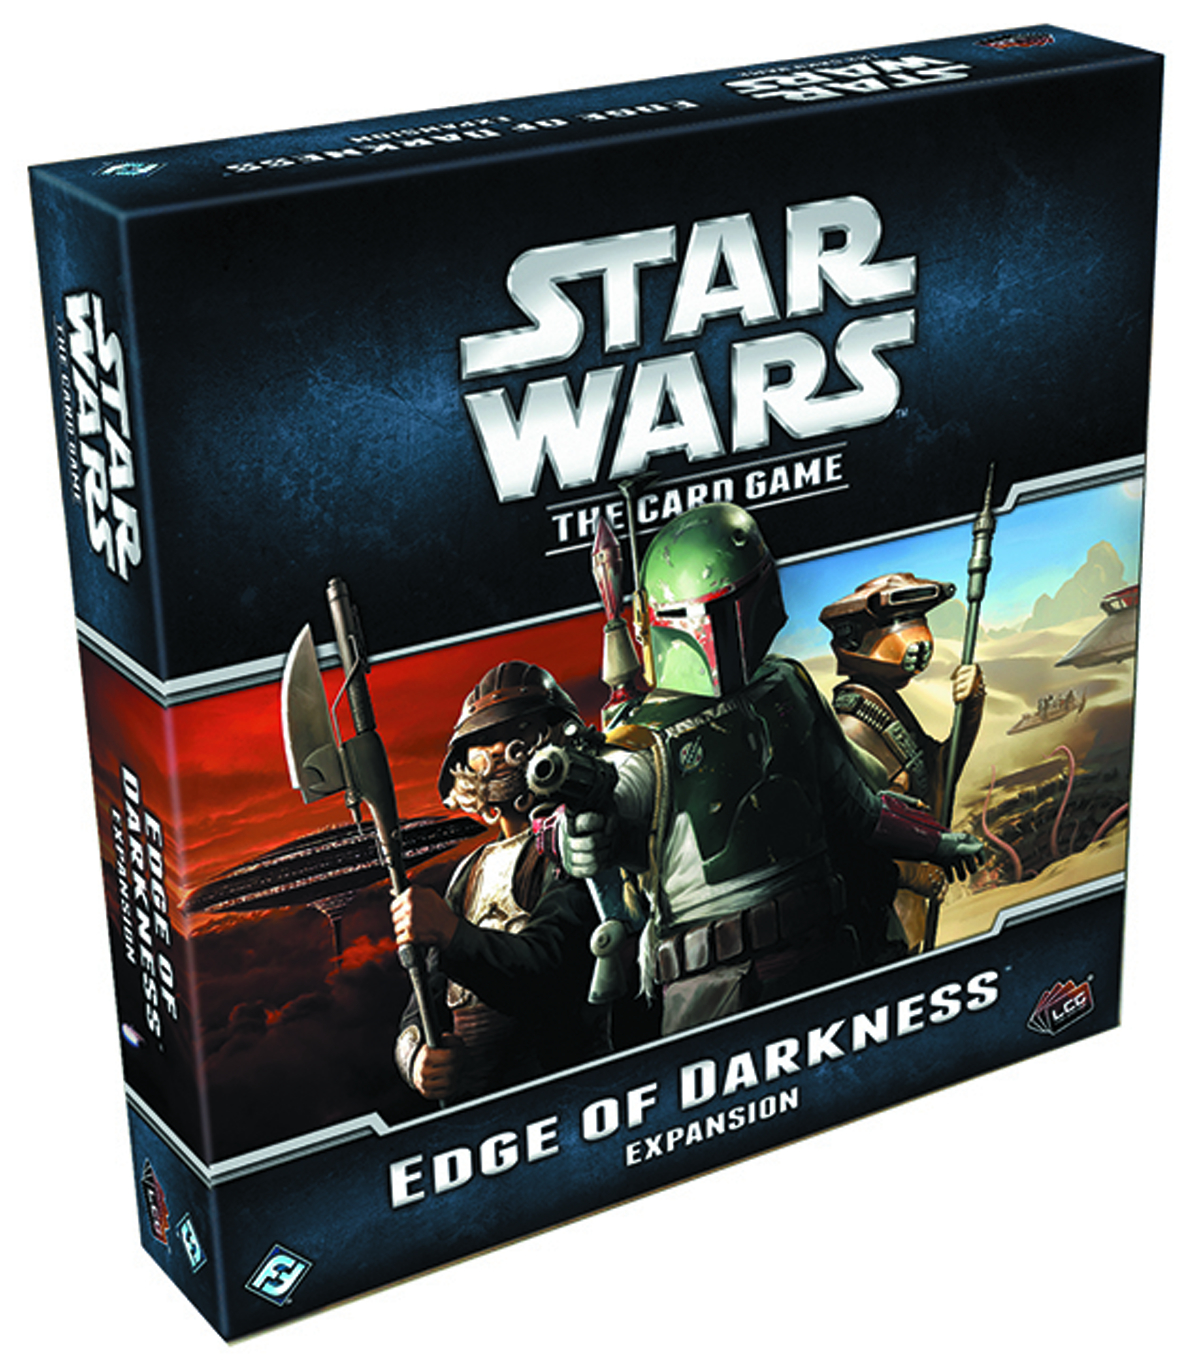 STAR WARS LCG EDGE OF DARKNESS EXPANSION PACK